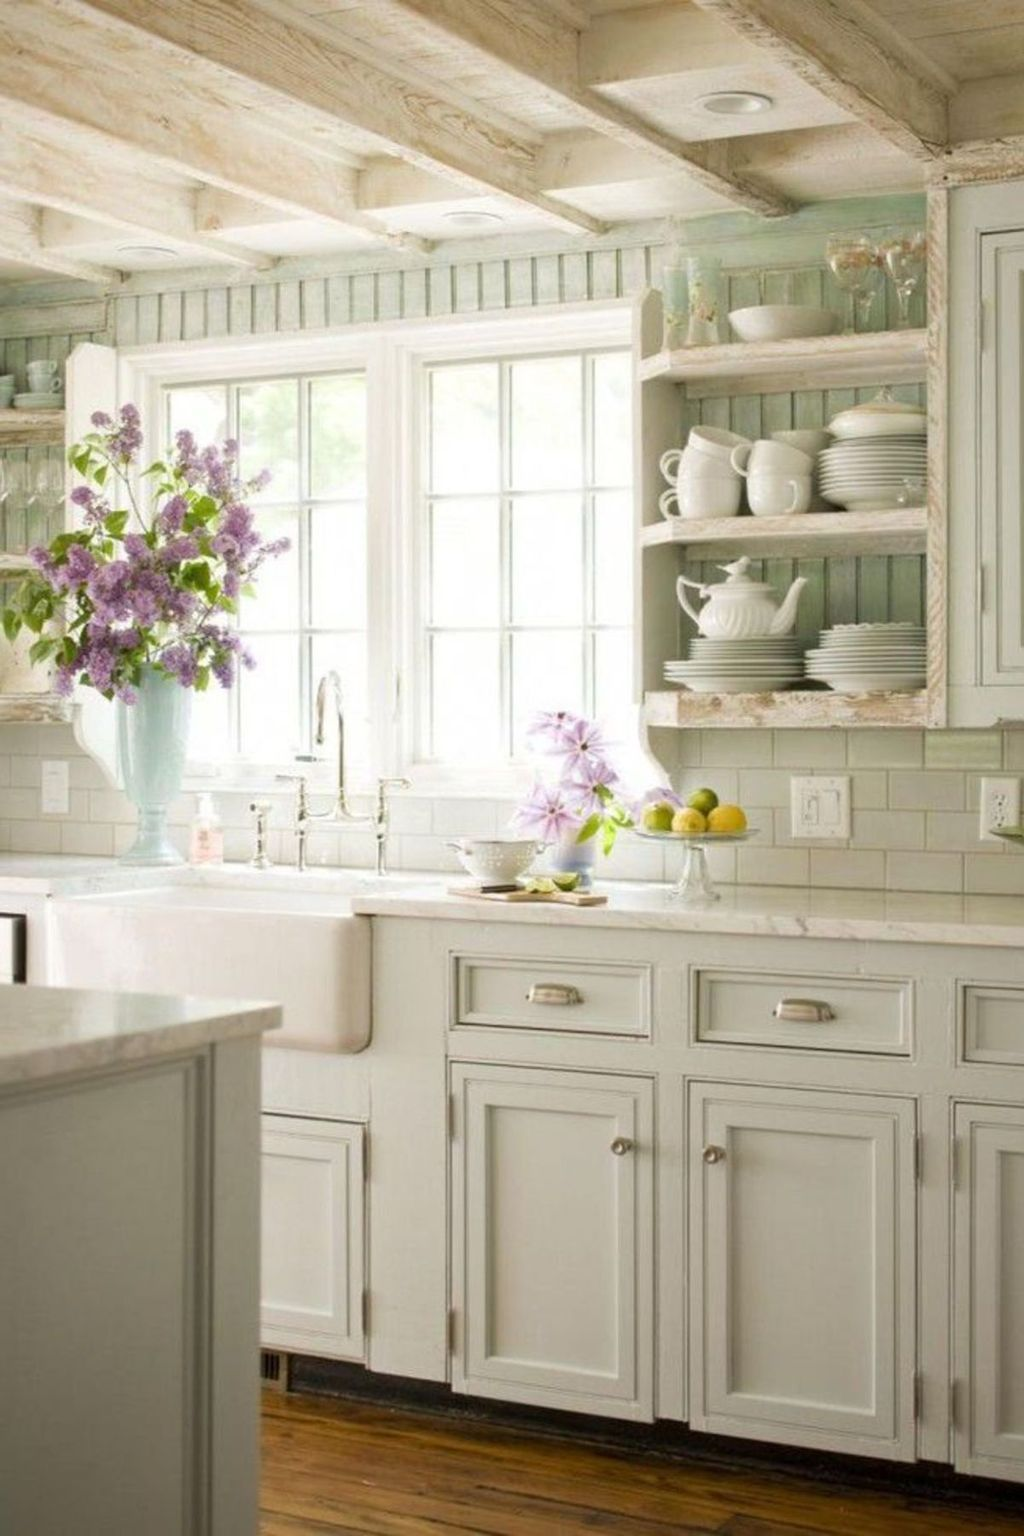 25 Lovely Shabby Chic Kitchen Ideas (Striking Rooms For Cooking) - 1670A03D03C7E3Bfa4032Ea5Df3259Ba